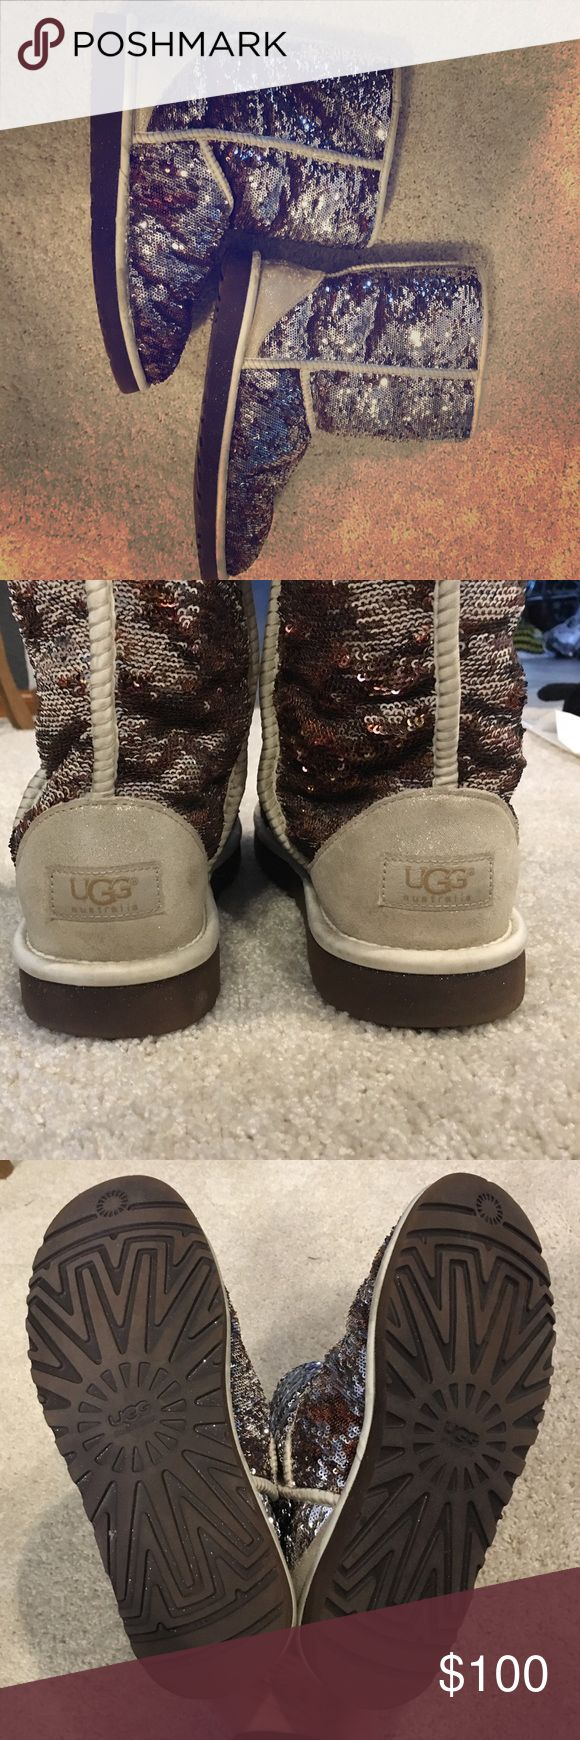 UGG Classic Short Sparkle Boot UGG Classic Short Sparkle Boot is so cute and warm. This boot has never been worn outside, only inside around the house. Keeps feet so warm and looks great with any outfit. UGG Shoes Winter & Rain Boots